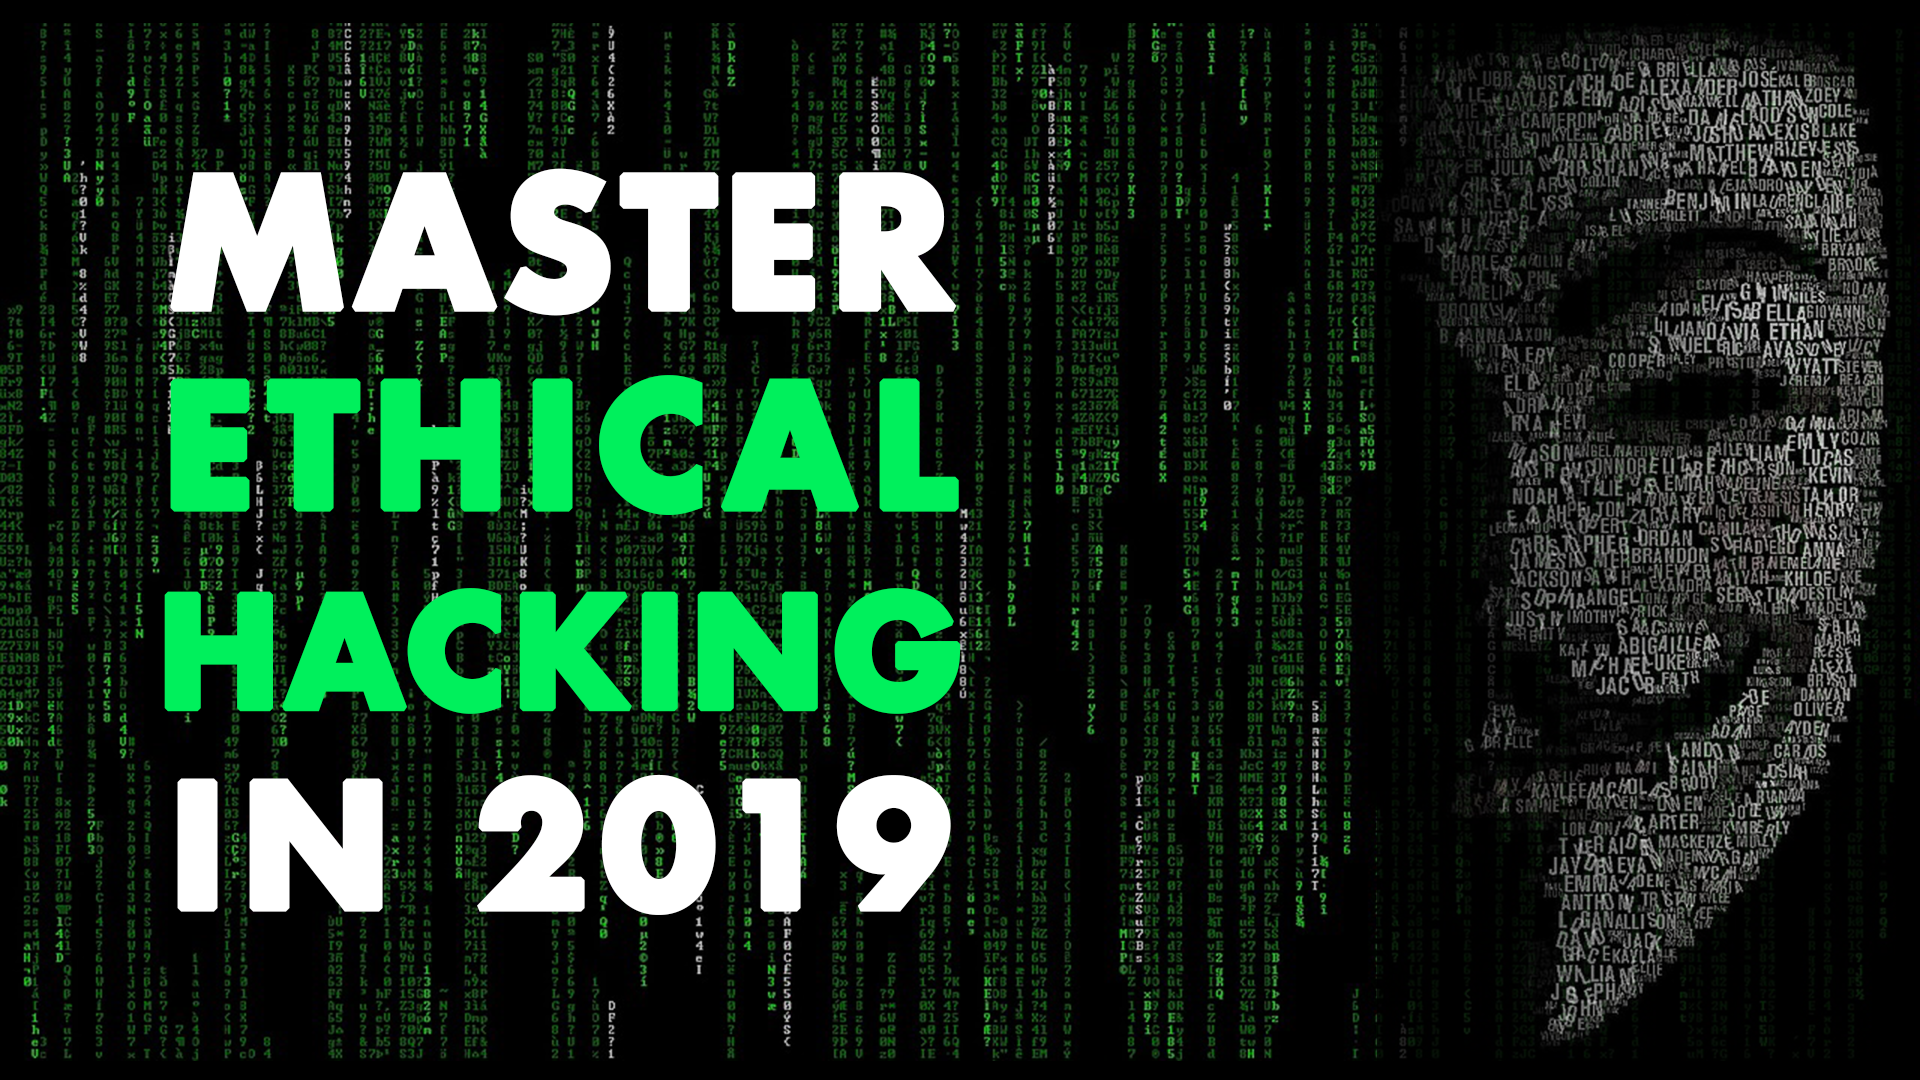 Master Ethical Hacking in 2019!